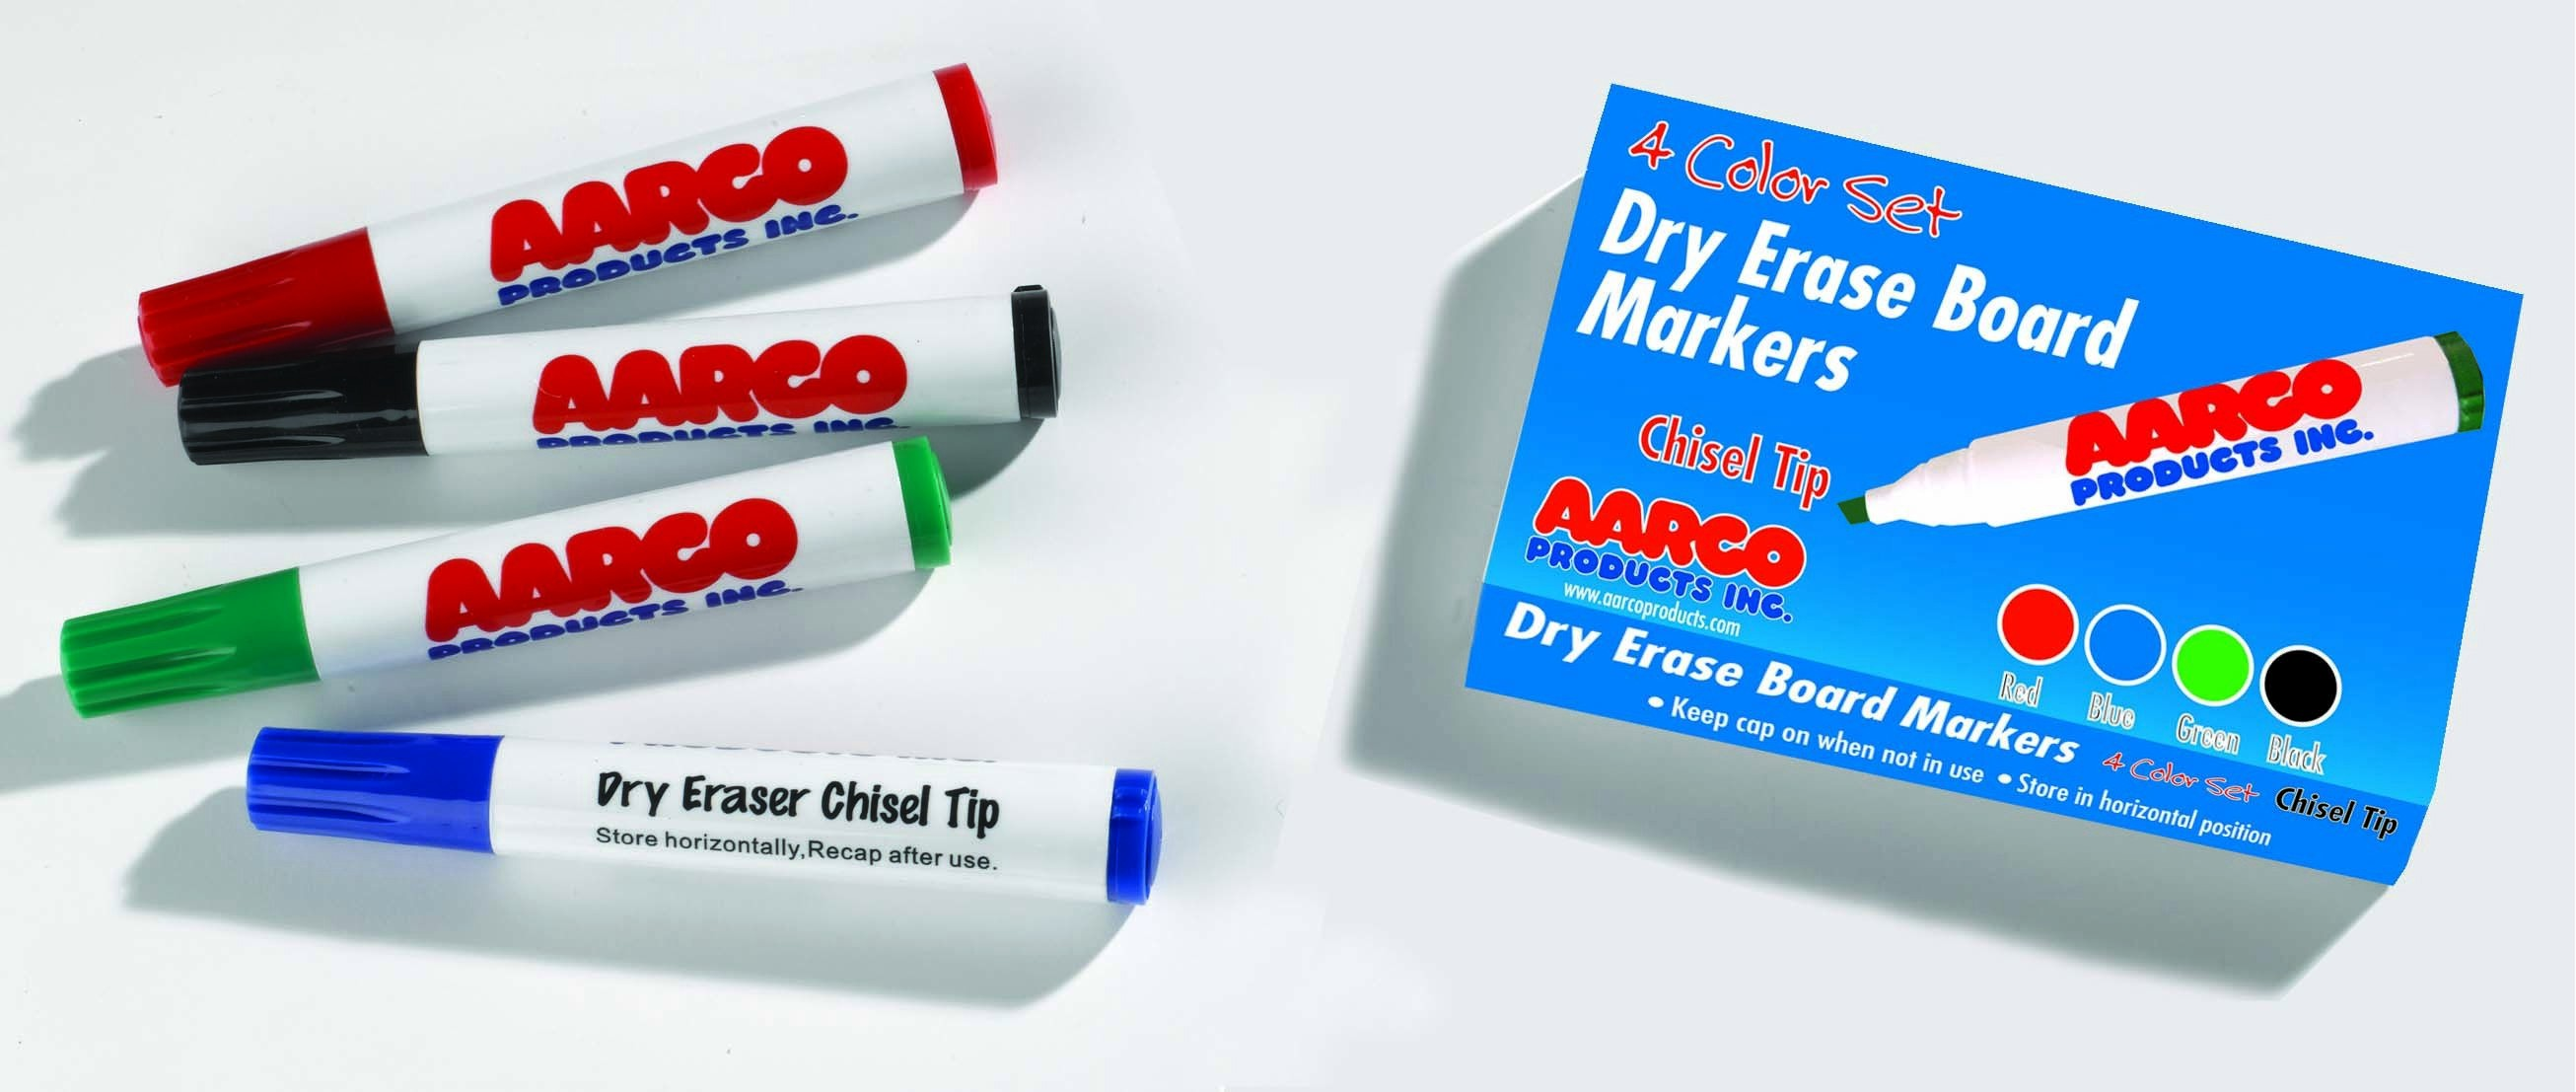 Reduced Odor Dry Erase Markers